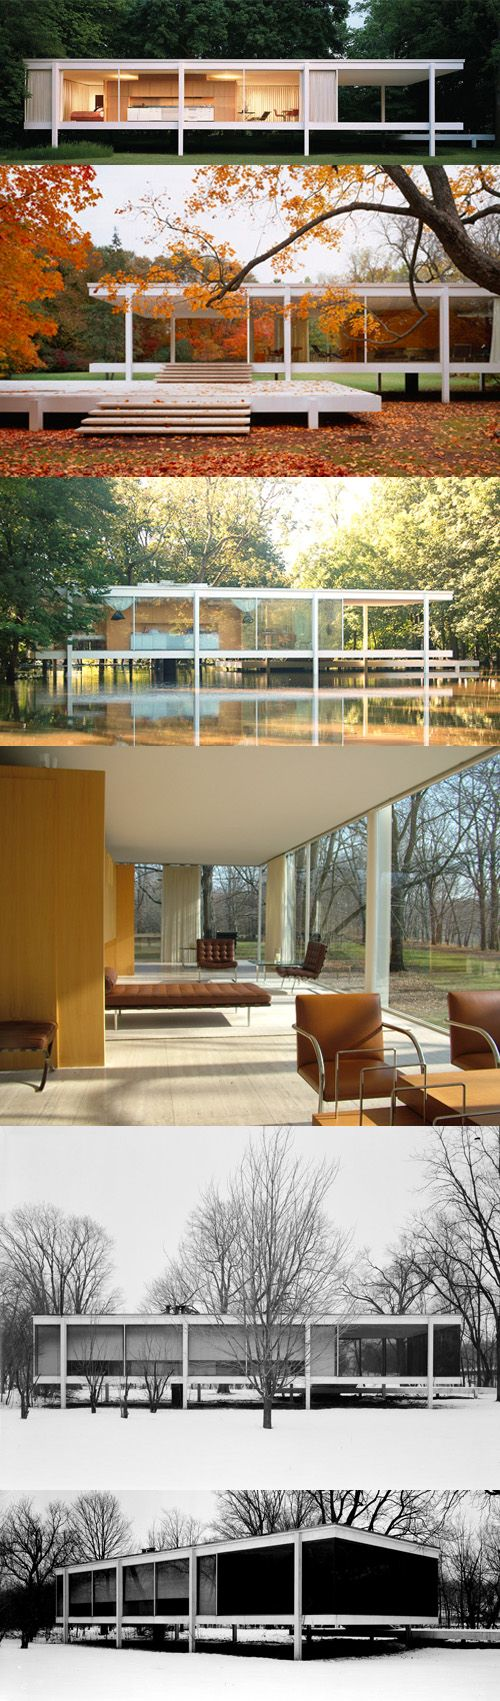 Farnsworth house by mies van der rohe exterior 8 jpg - 25 Best Farnsworth House Ideas On Pinterest Ludwig Mies Van Der Rohe Modern Architecture And Modern Architecture Design